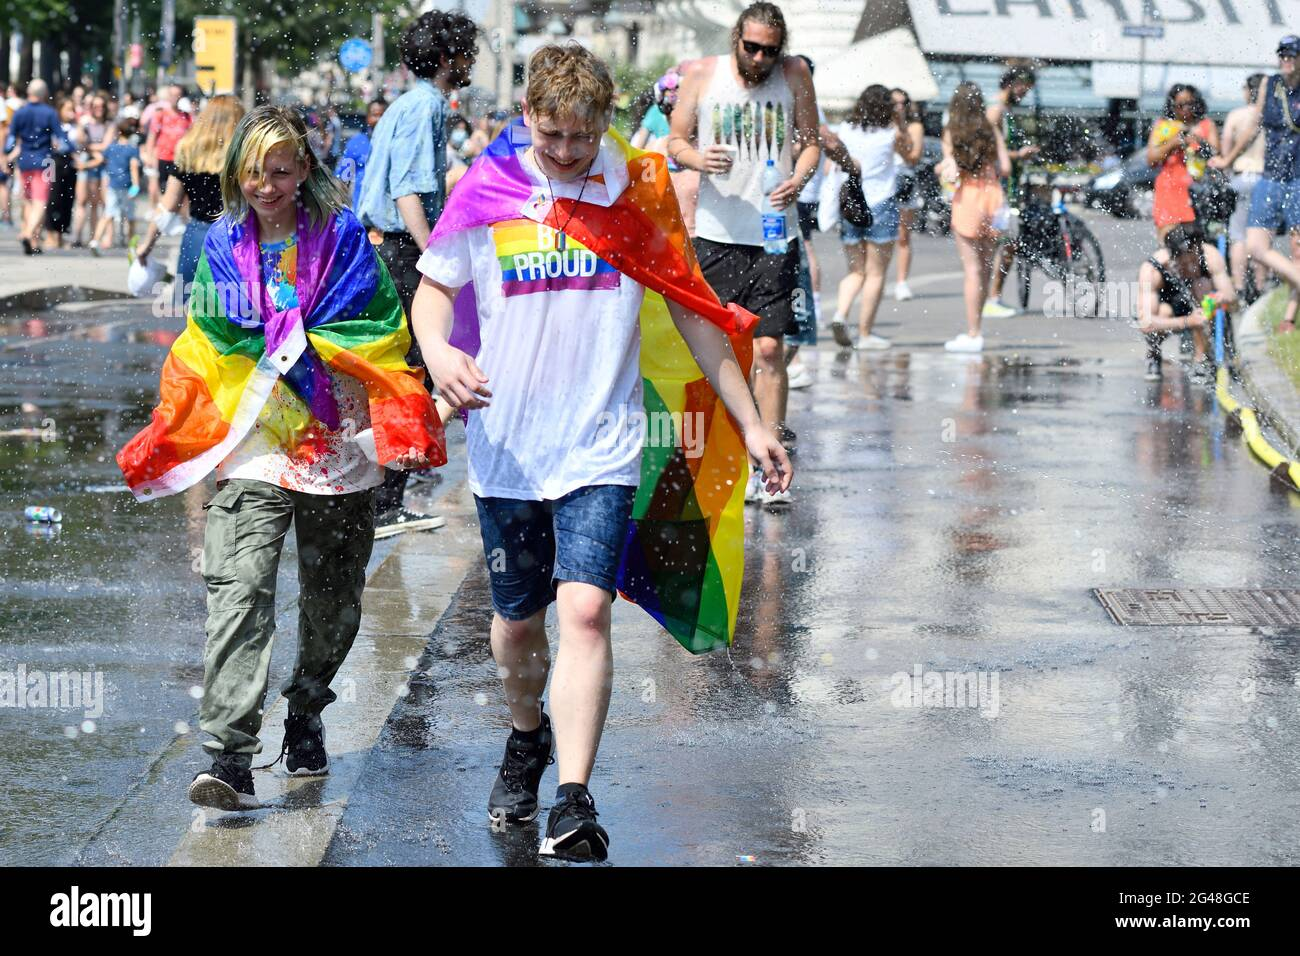 Vienna, Austria. 19th June, 2021. For the 25th time the rainbow parade (Vienna Pride) will take place on Vienna's Ringstrasse. This year, the parade will take place without vehicles, i.e. on foot, with a wheelchair or bicycle, and is thus returning to its roots. Stock Photo